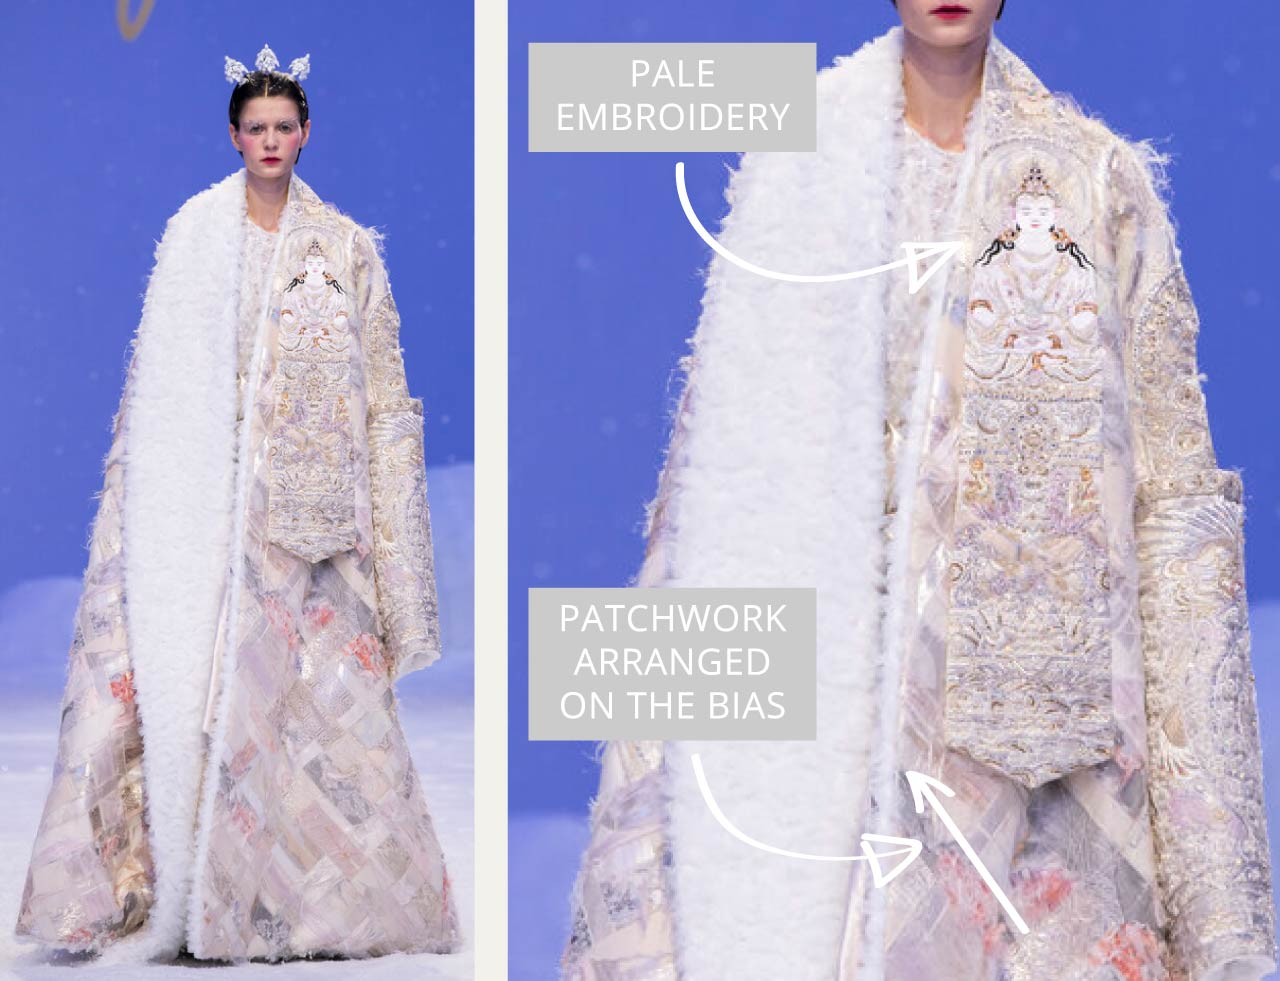 Reverse Textiles at Guo Pei Haute Couture | The Cutting Class. Pale Buddhist embroidery and patchwork arranged on the bias. SS20 Haute Couture.